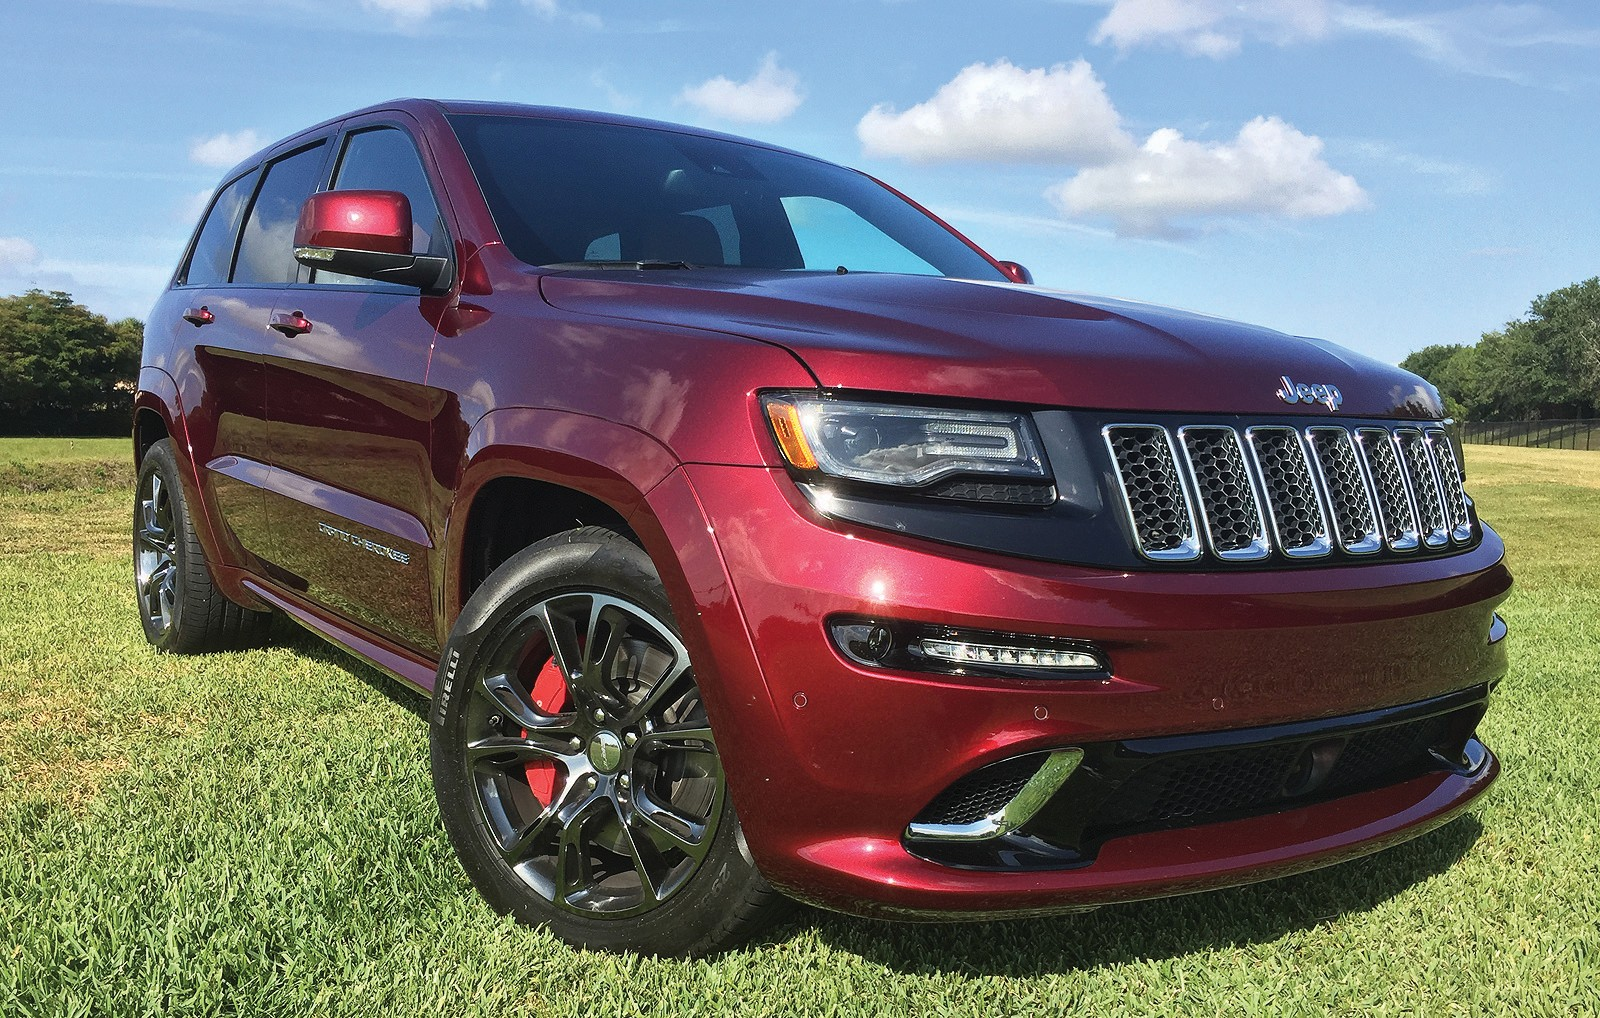 Jeep Grand Cherokee Srt8 475 Hp Packed Into A Family Suv Naples Florida Weekly